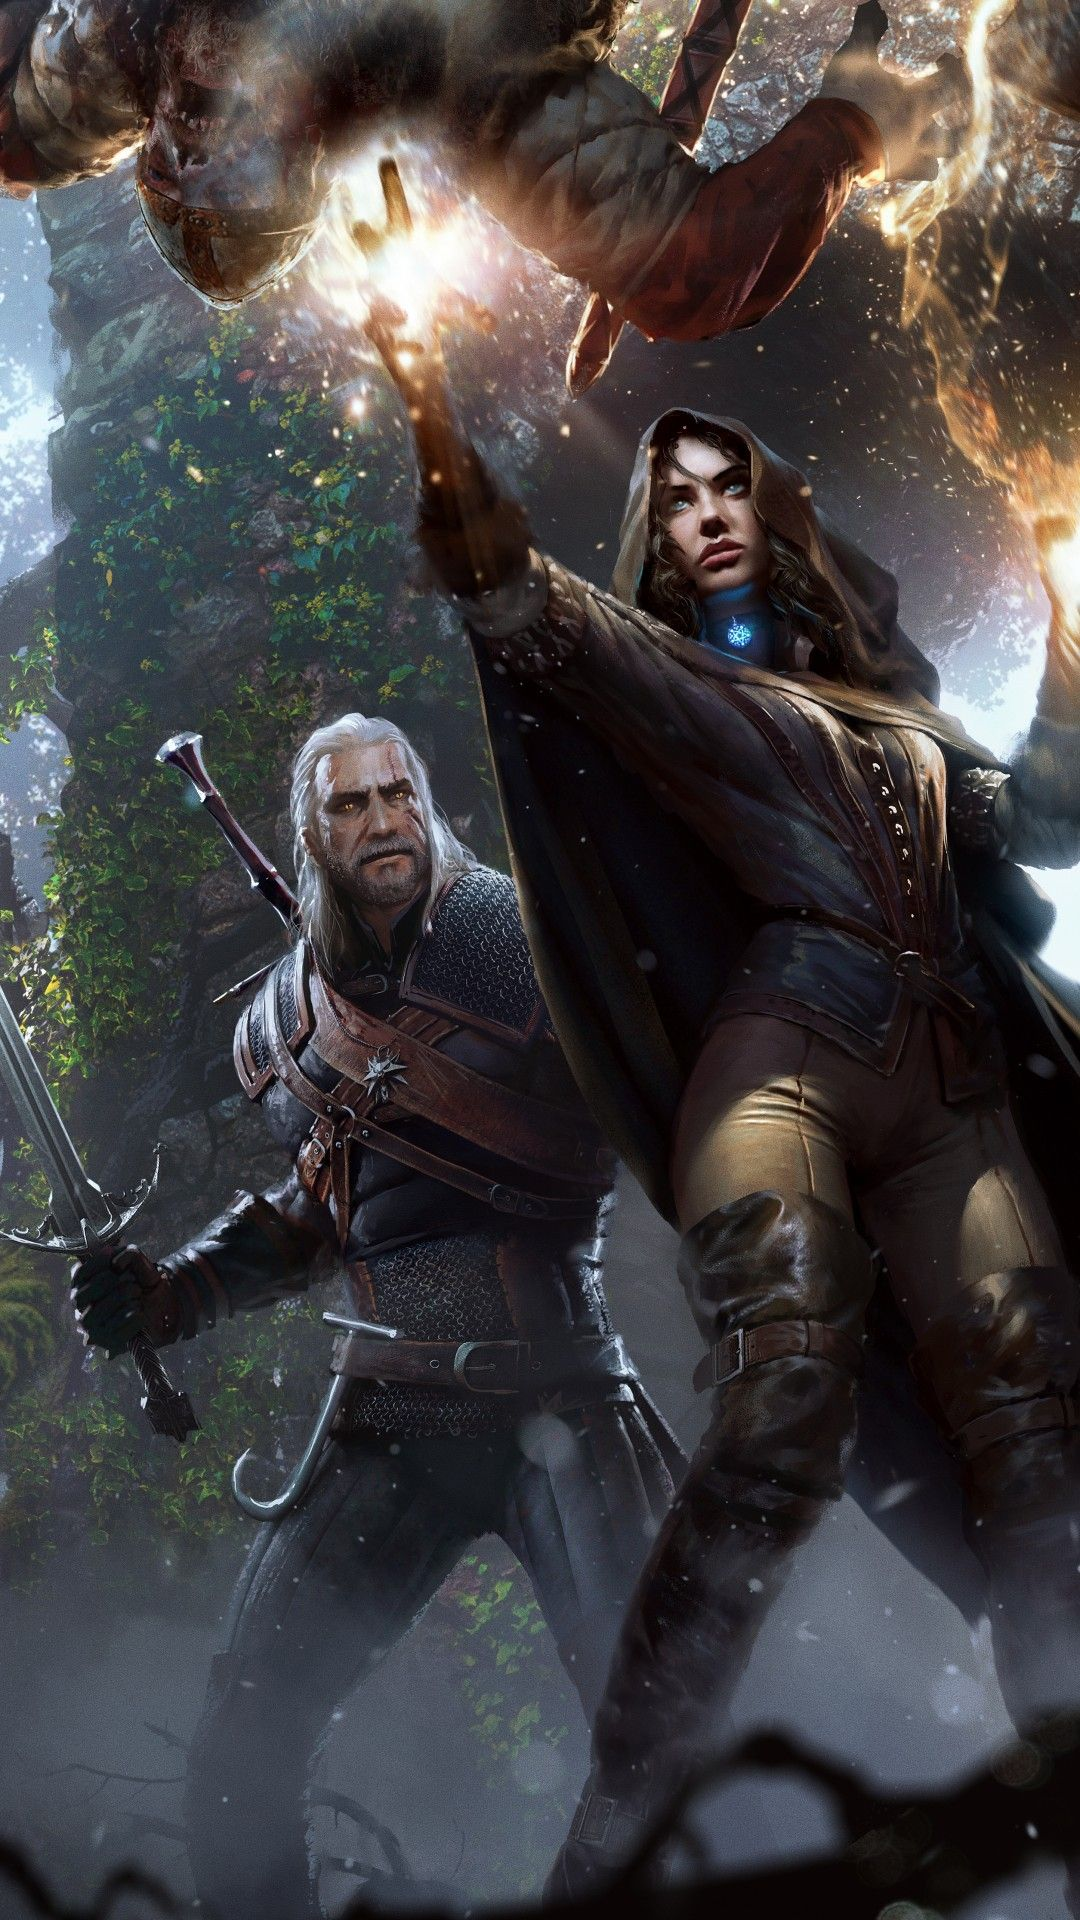 The Witcher 3 Hd Wallpaper Hupages Download Iphone Wallpapers The Witcher Wild Hunt The Witcher The Witcher 3